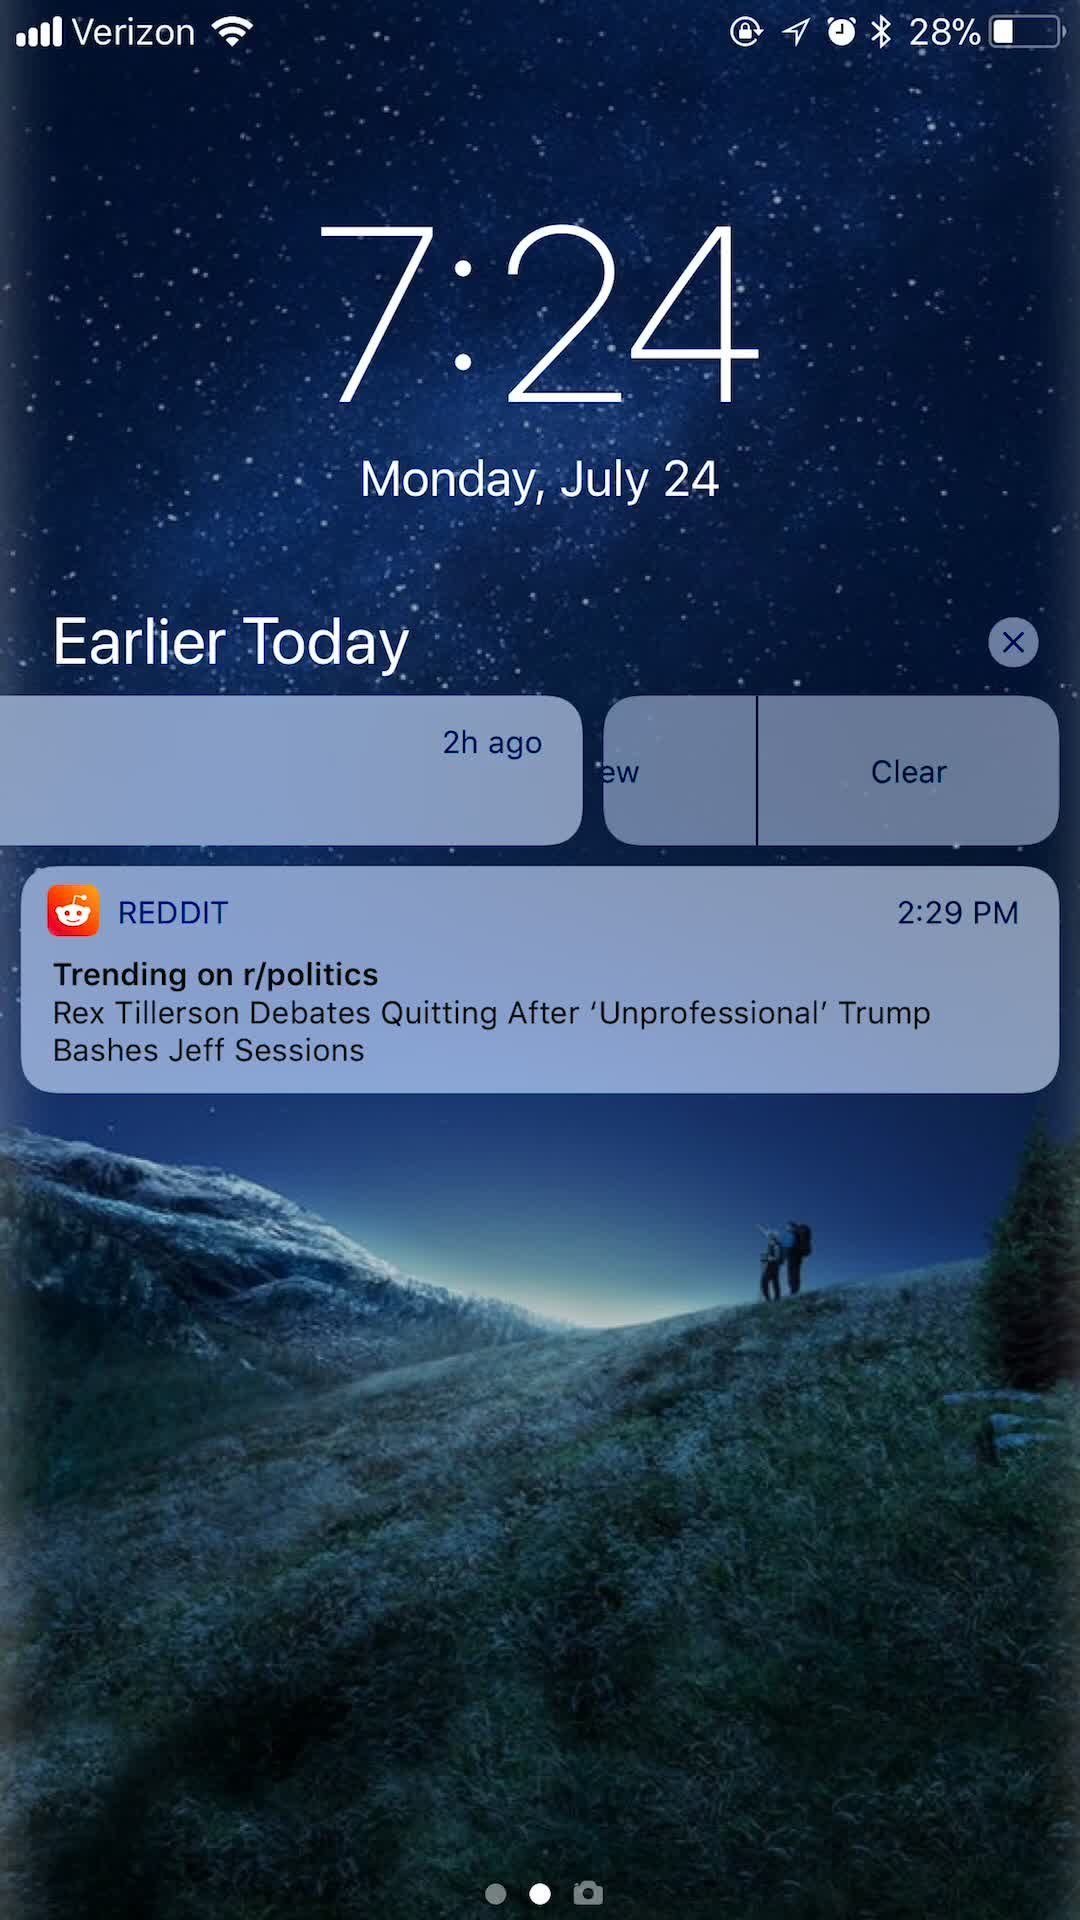 """Yaasssss!!!! Newest beta brings back the """"slide to go directly to app from lock screen """" that was on previous versions of iOS!!! No more awkward 3D pressing then tapping just to go to the app!! yaasssss-newest-beta-brings-back-the-slide-to-go-directly-to-app-from-lock-screen-that-was-on-previous-versions-of-ios-no-more-awkward-3d-pressing-then-tapping-just-to-go-to"""